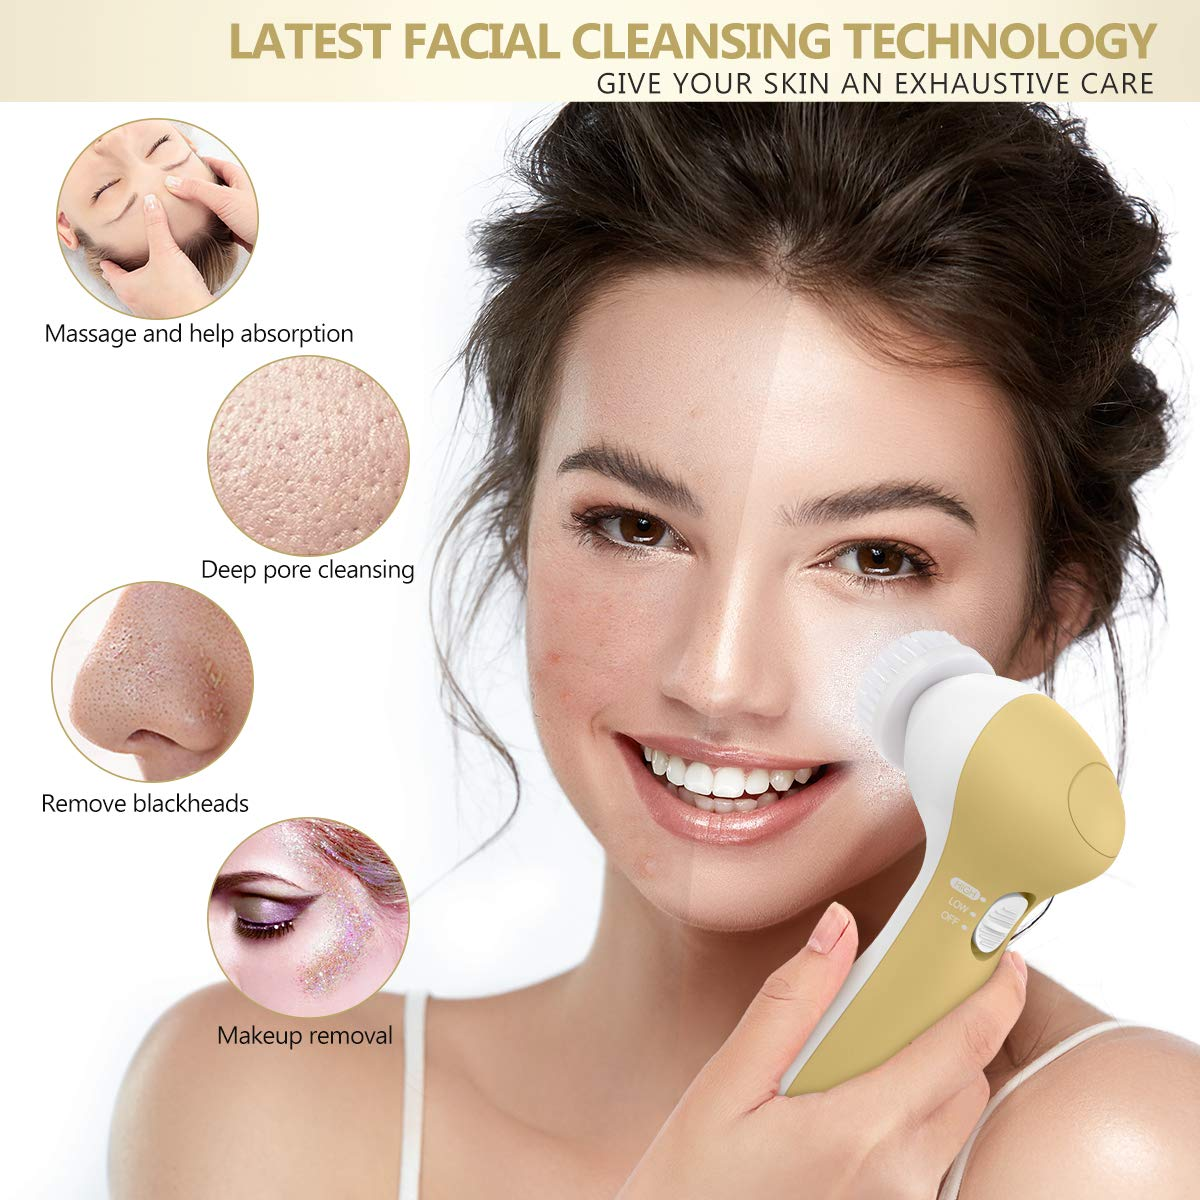 Face Brush Waterproof Face Spin Brush with 7 Brush Heads for Deep Cleansing (Rich Gold)